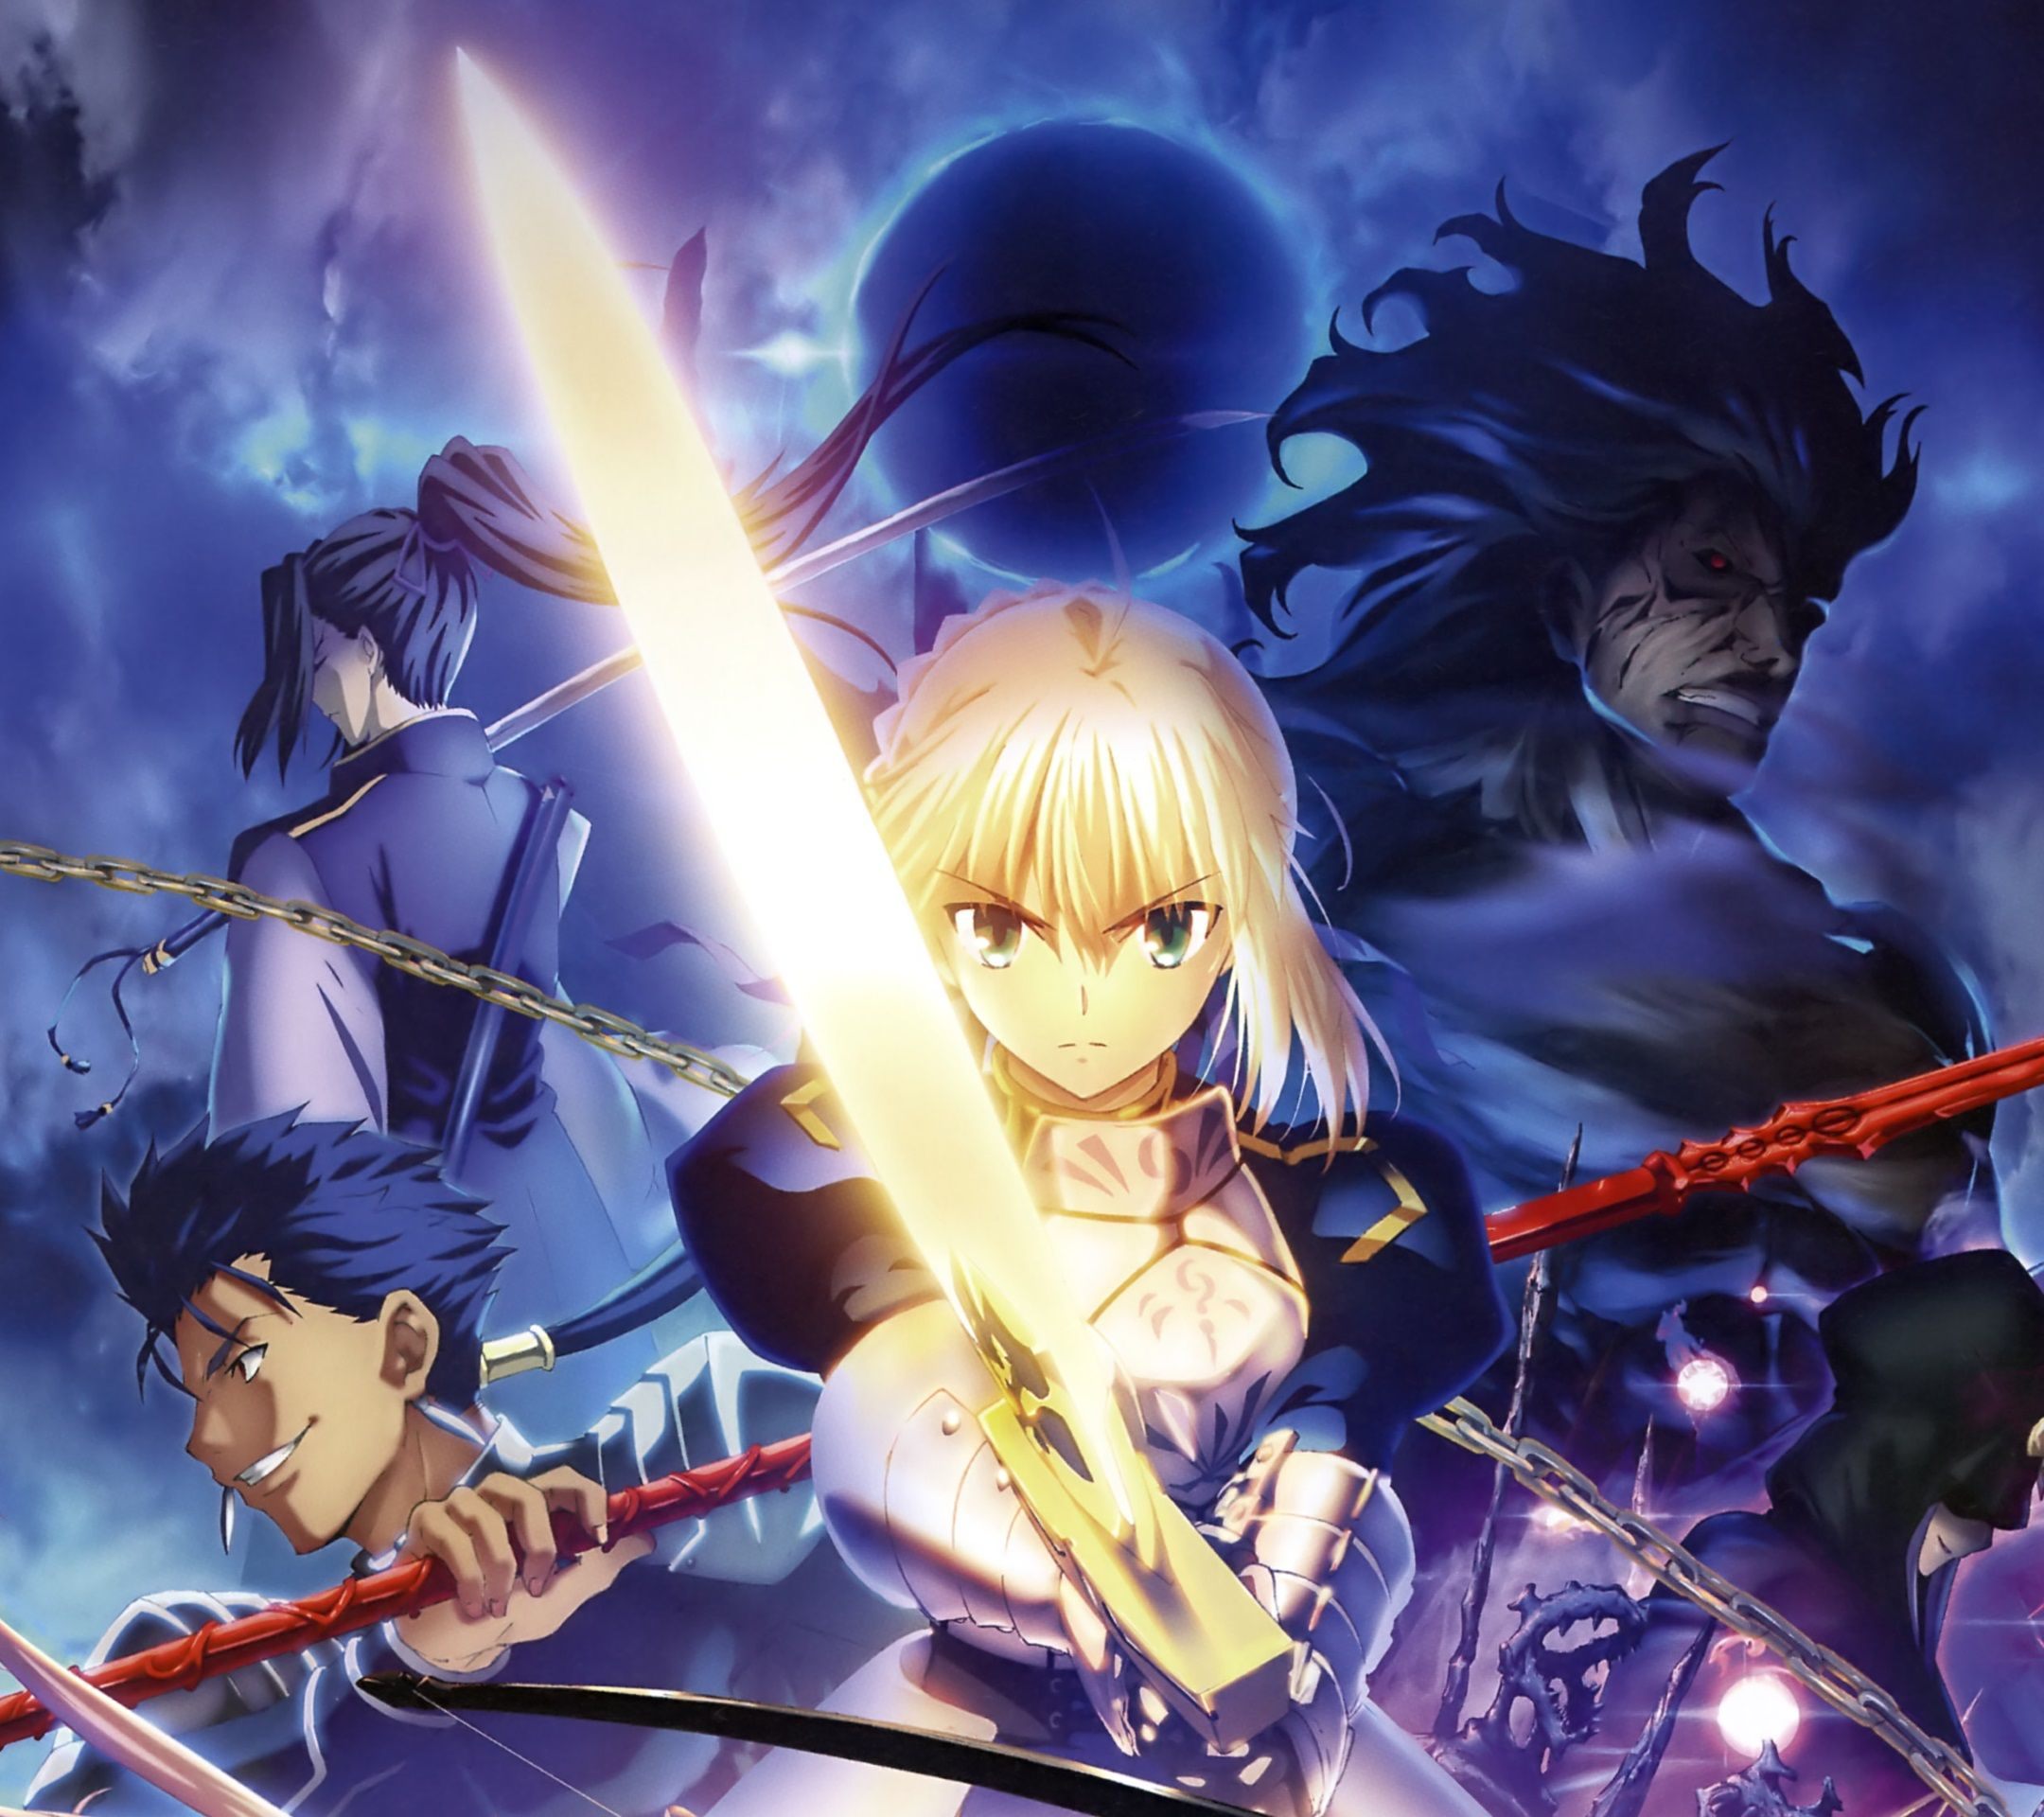 Saber Anime Wallpaper Android Com Imagens Galo